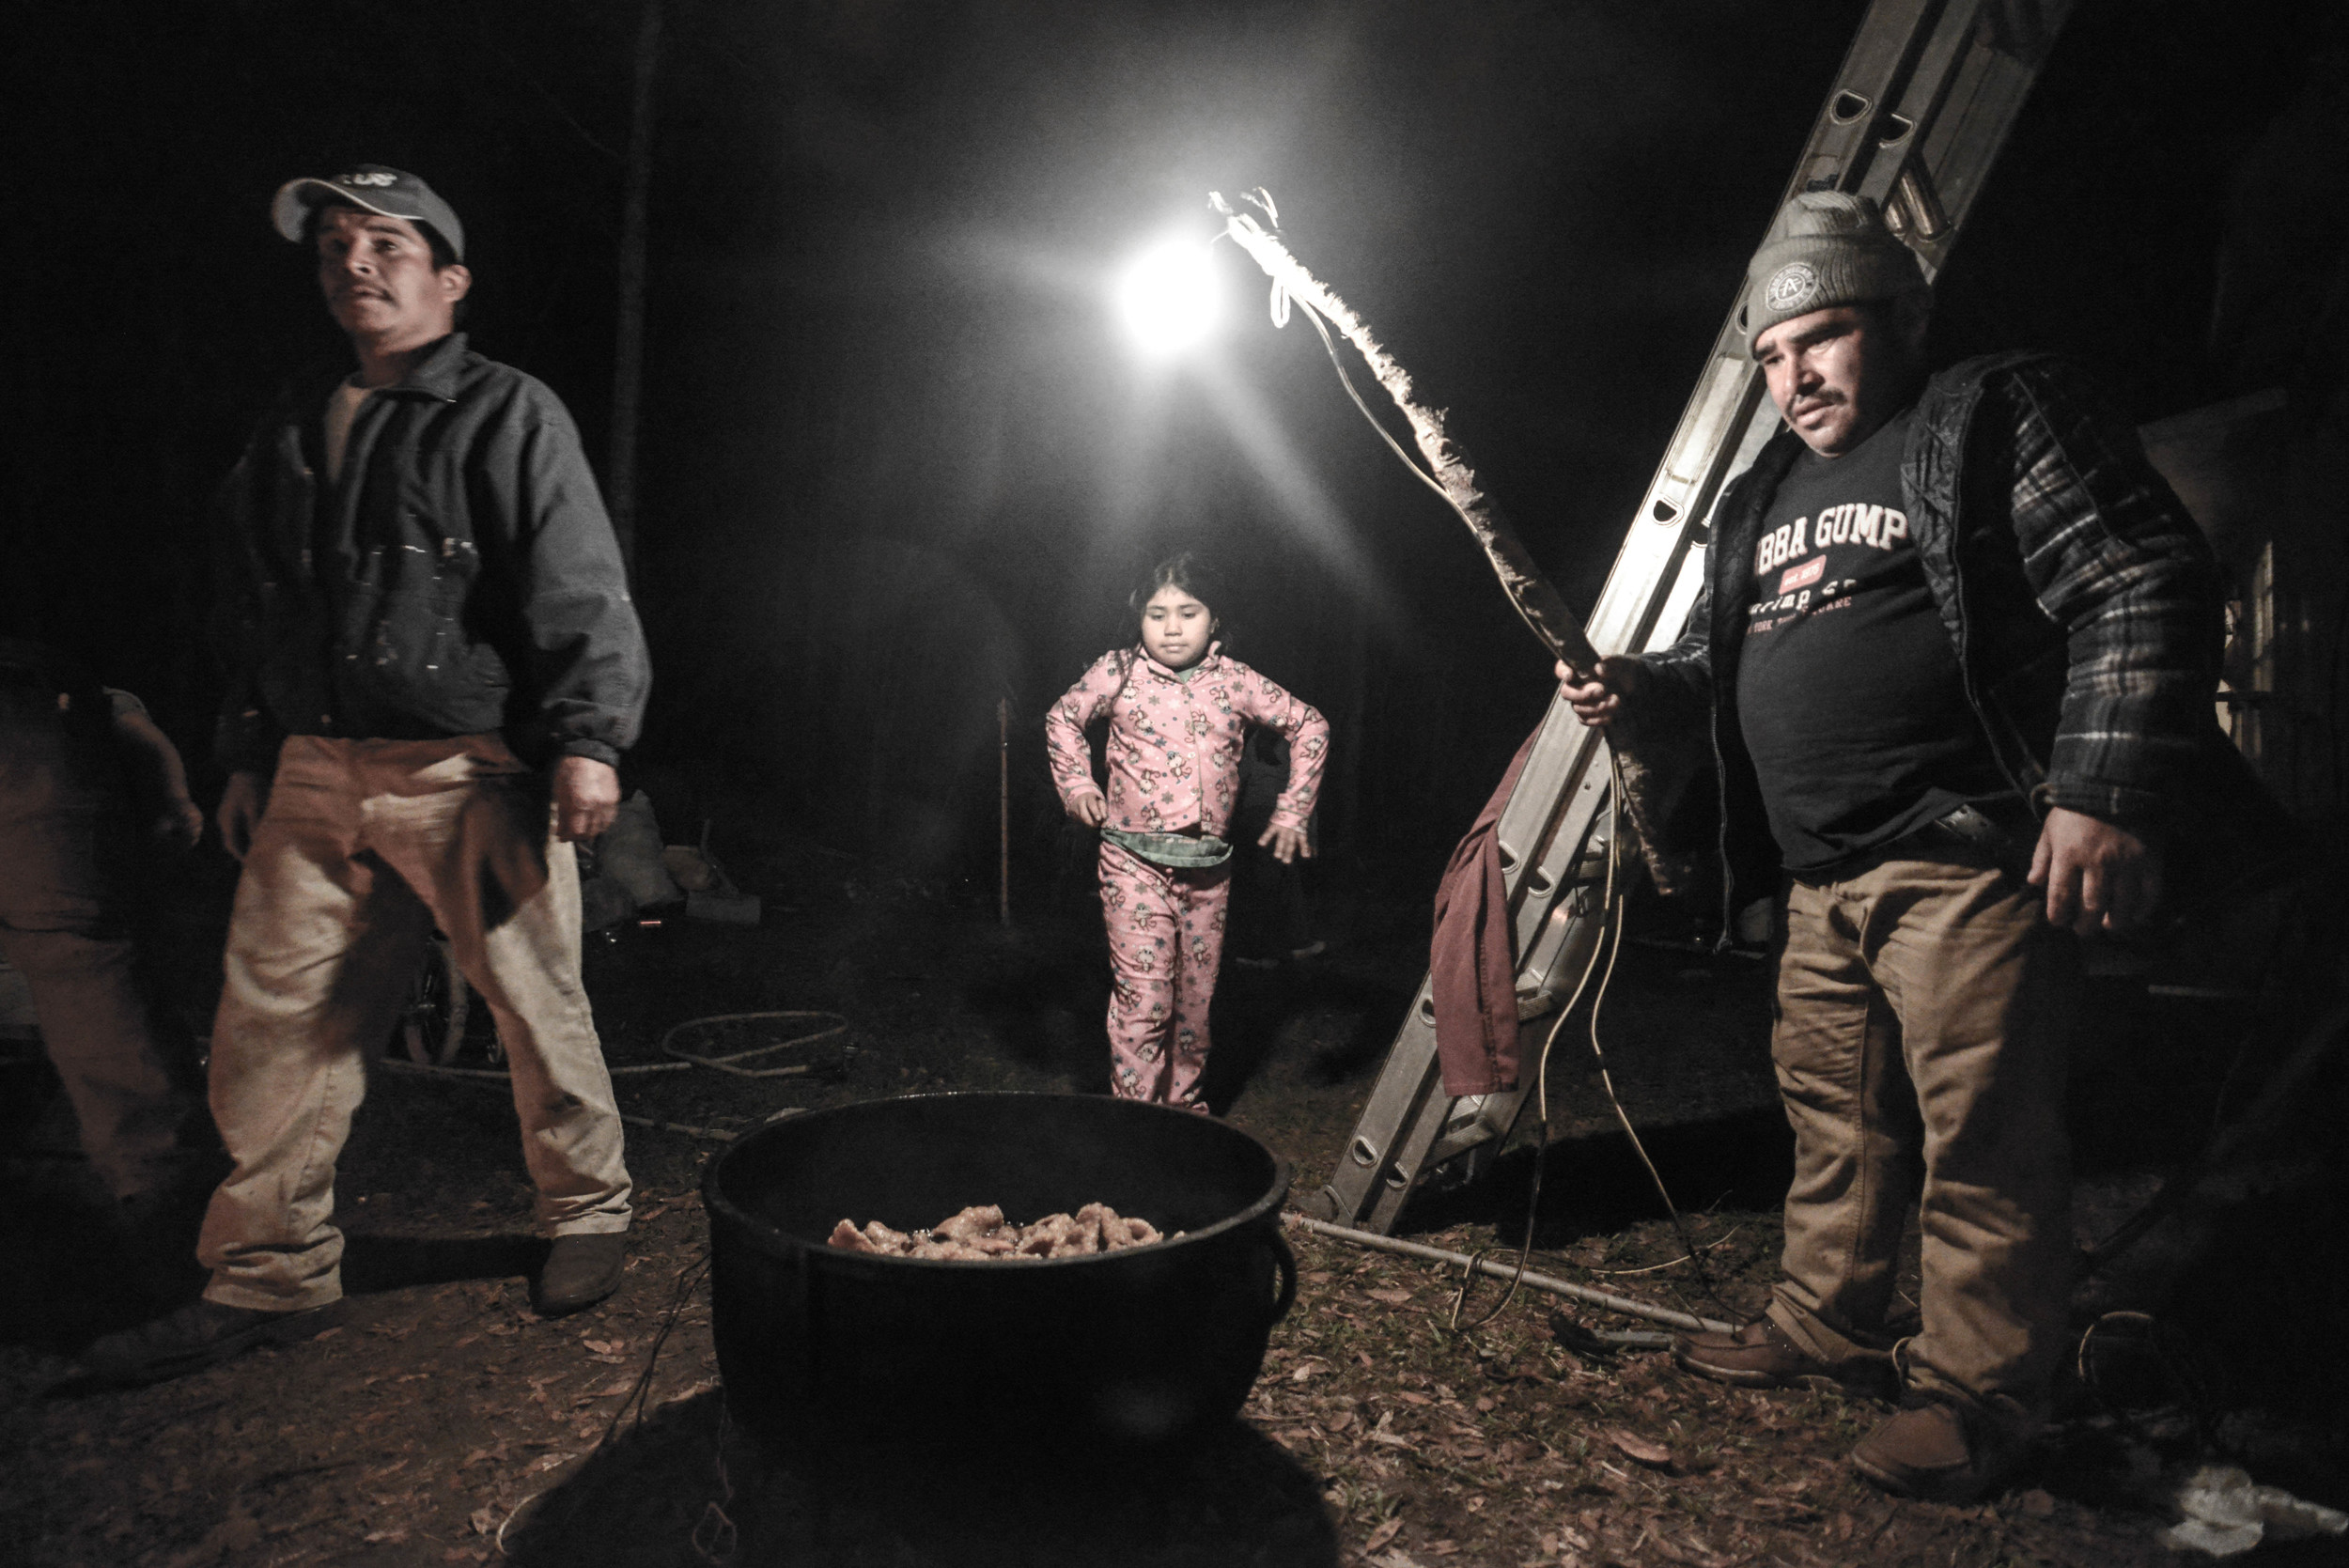 Suleyma looks onto a pot of boiling pig skin as they get ready for a birthday celebration in honor of Maria, her grandmother. Workers from neighboring homes and their church were invited to eat, drink and celebrate on a Friday night at their home.